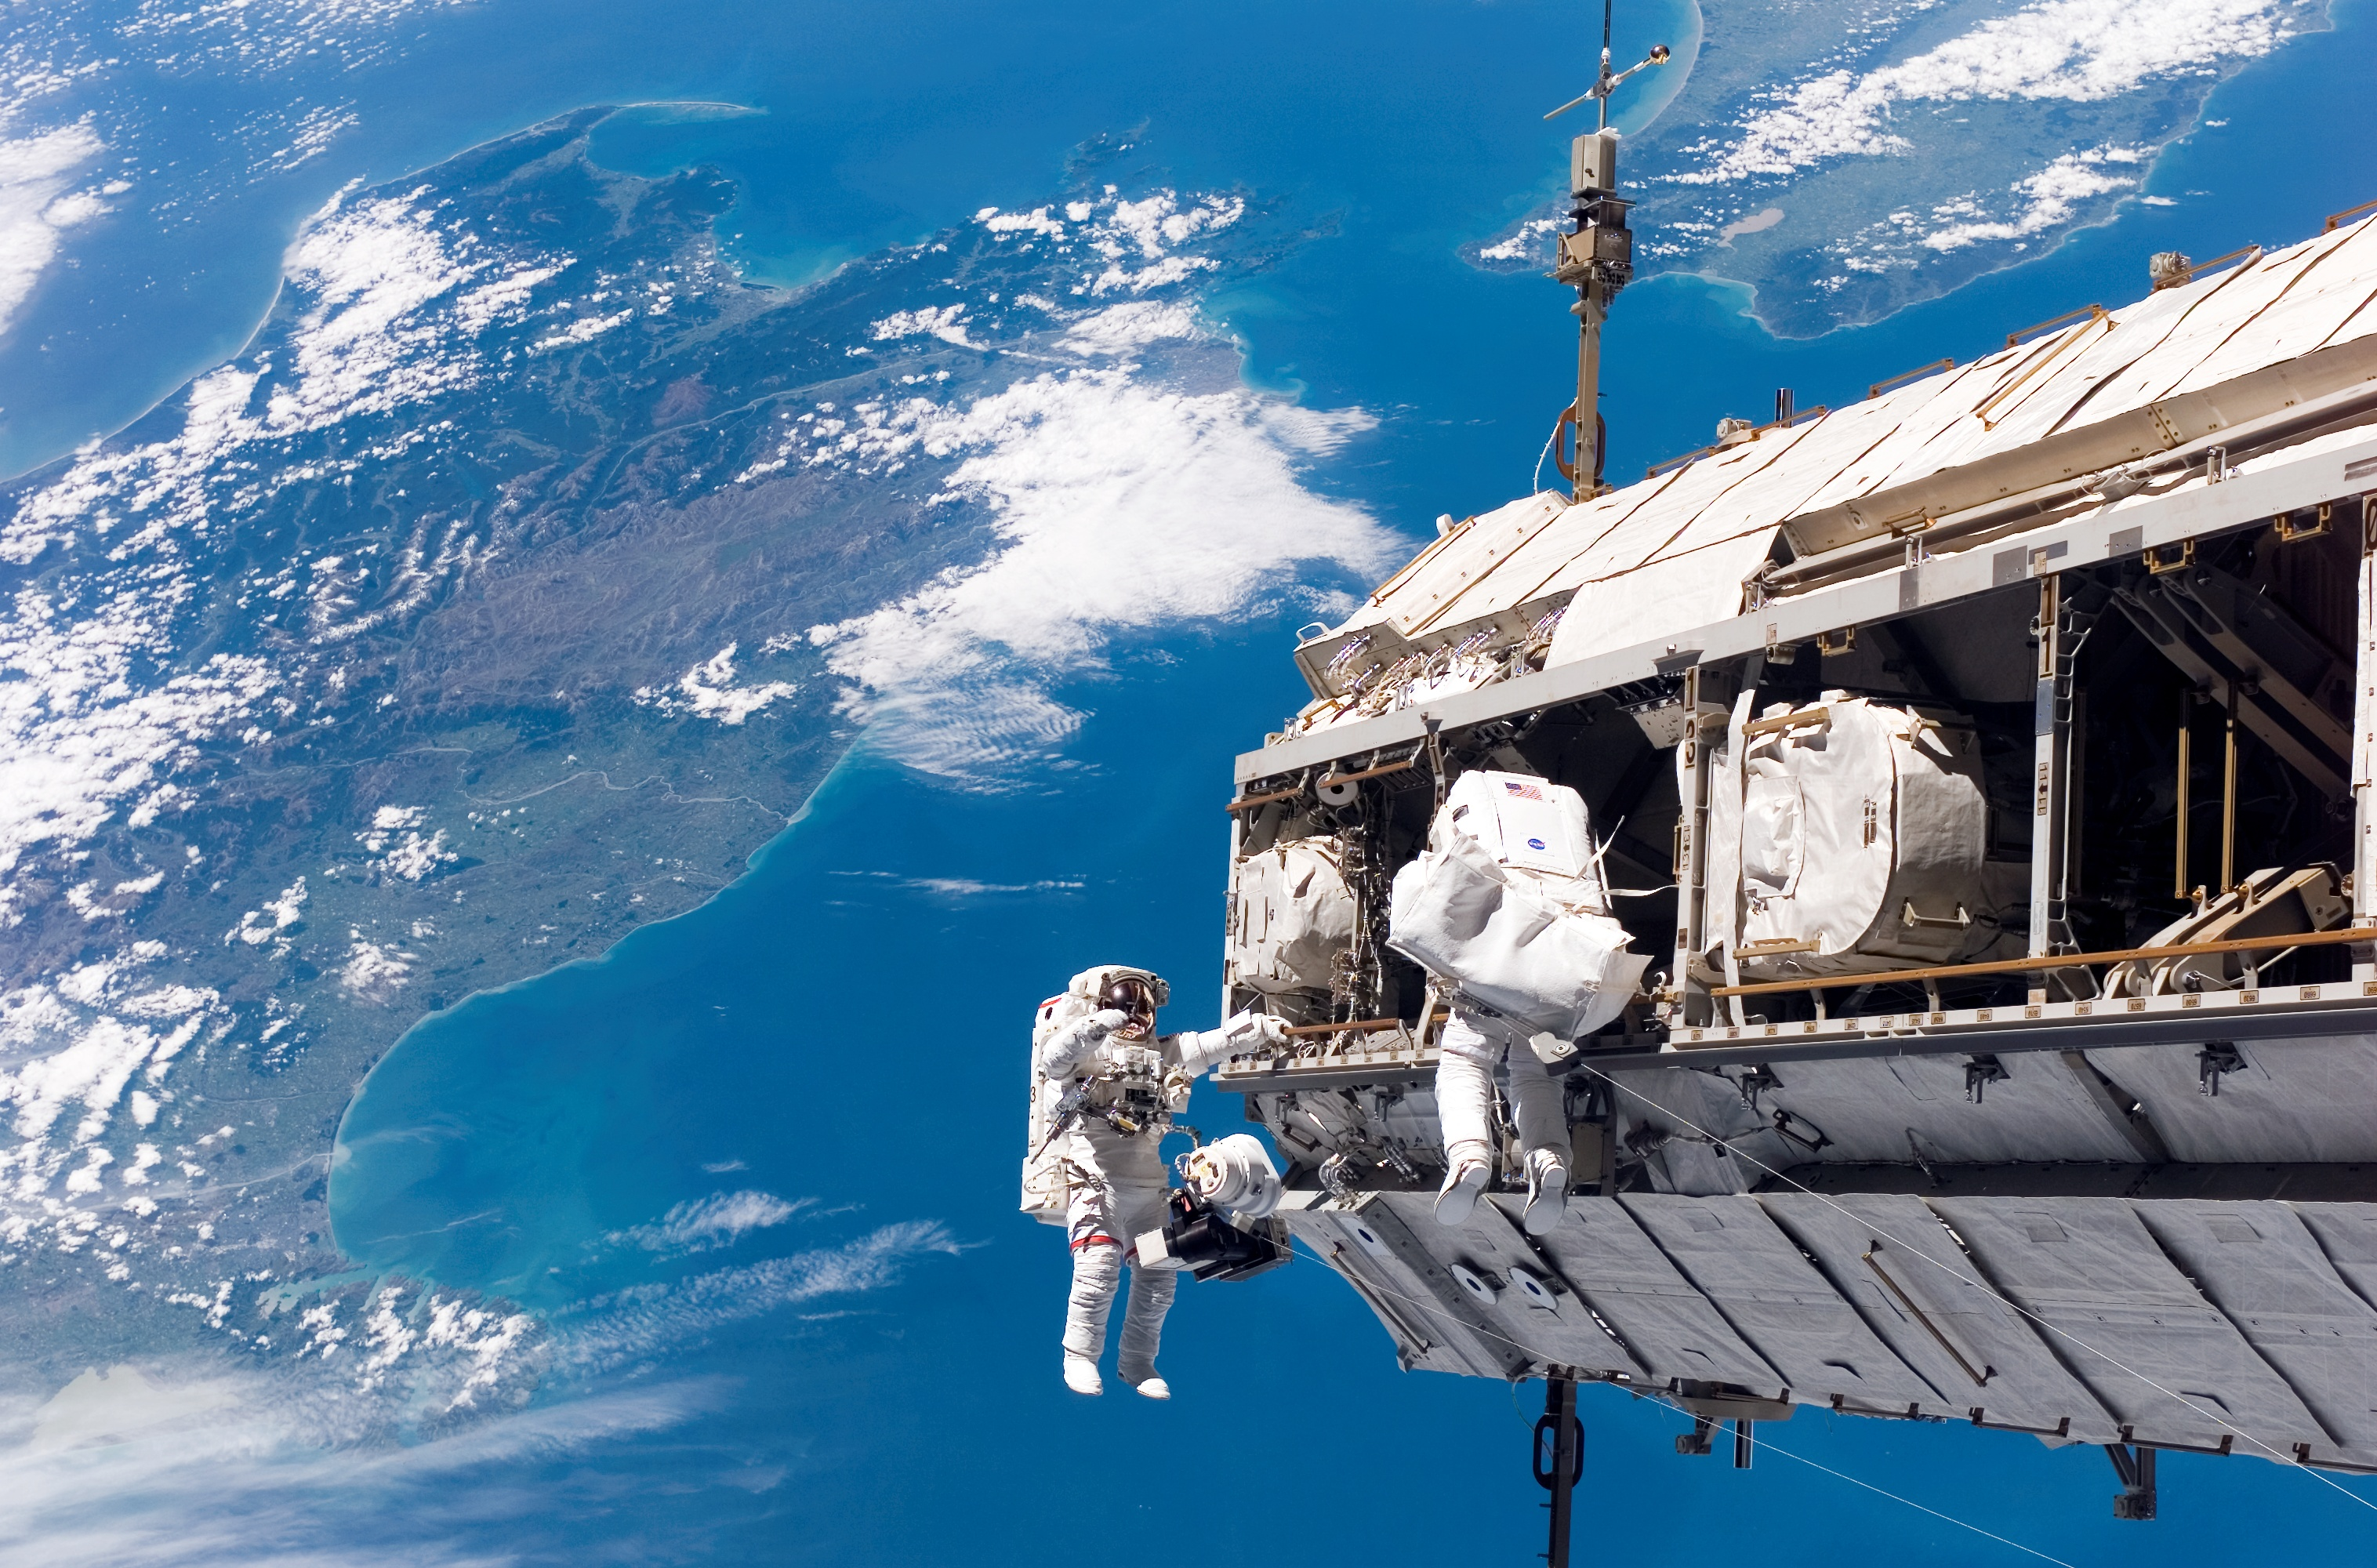 A pic taken while a real Spacewalk